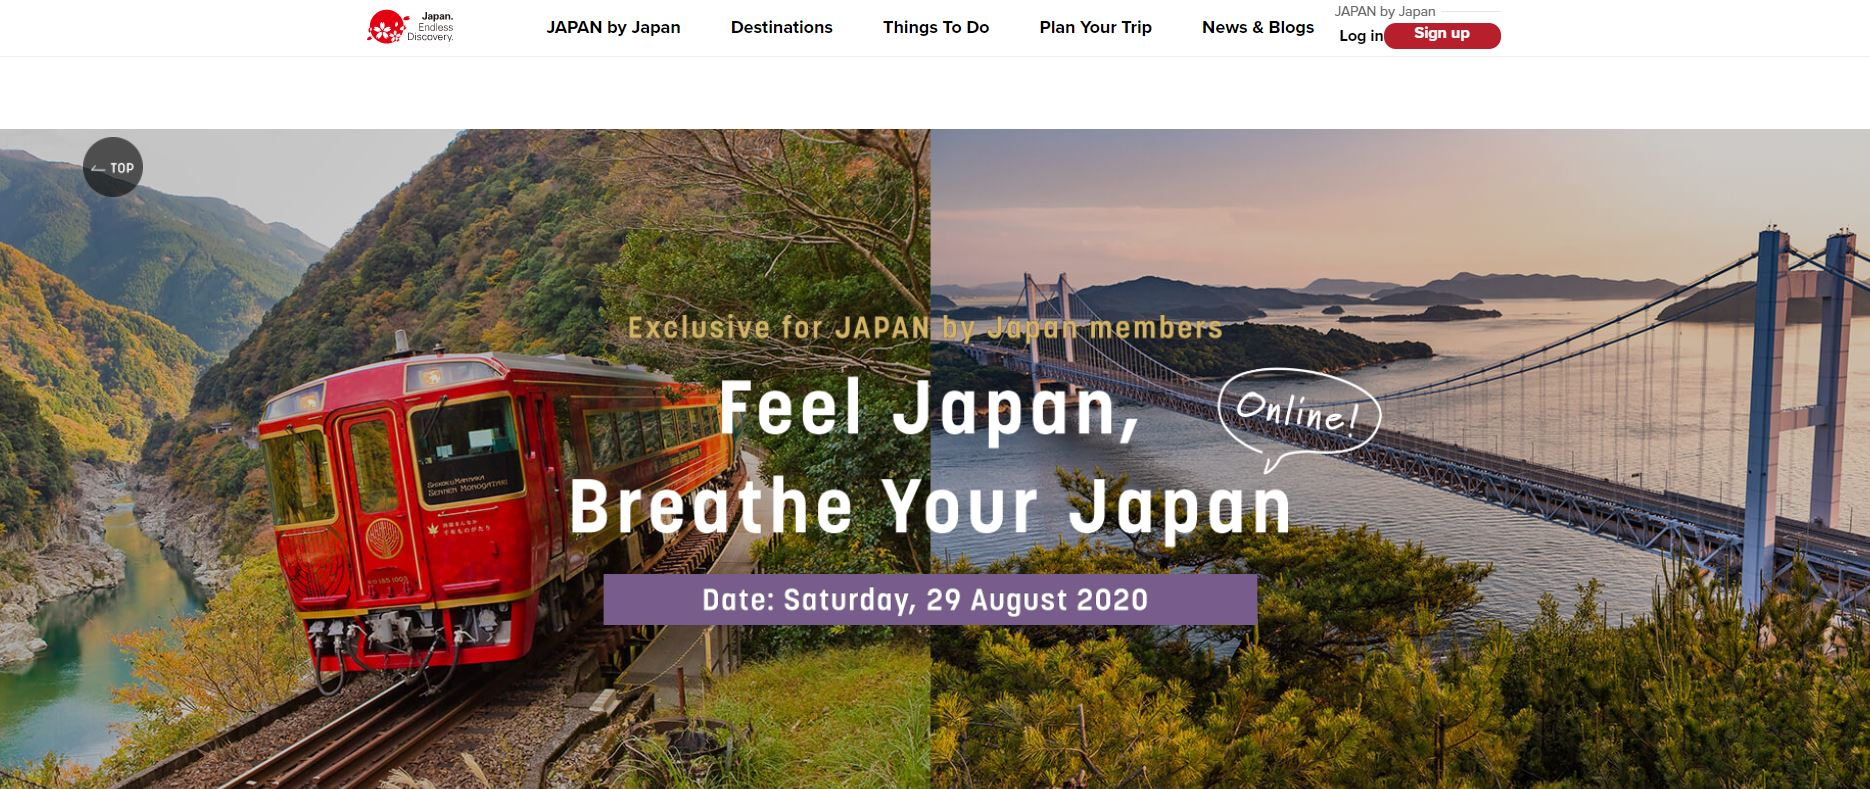 JAPAN by Japan online event